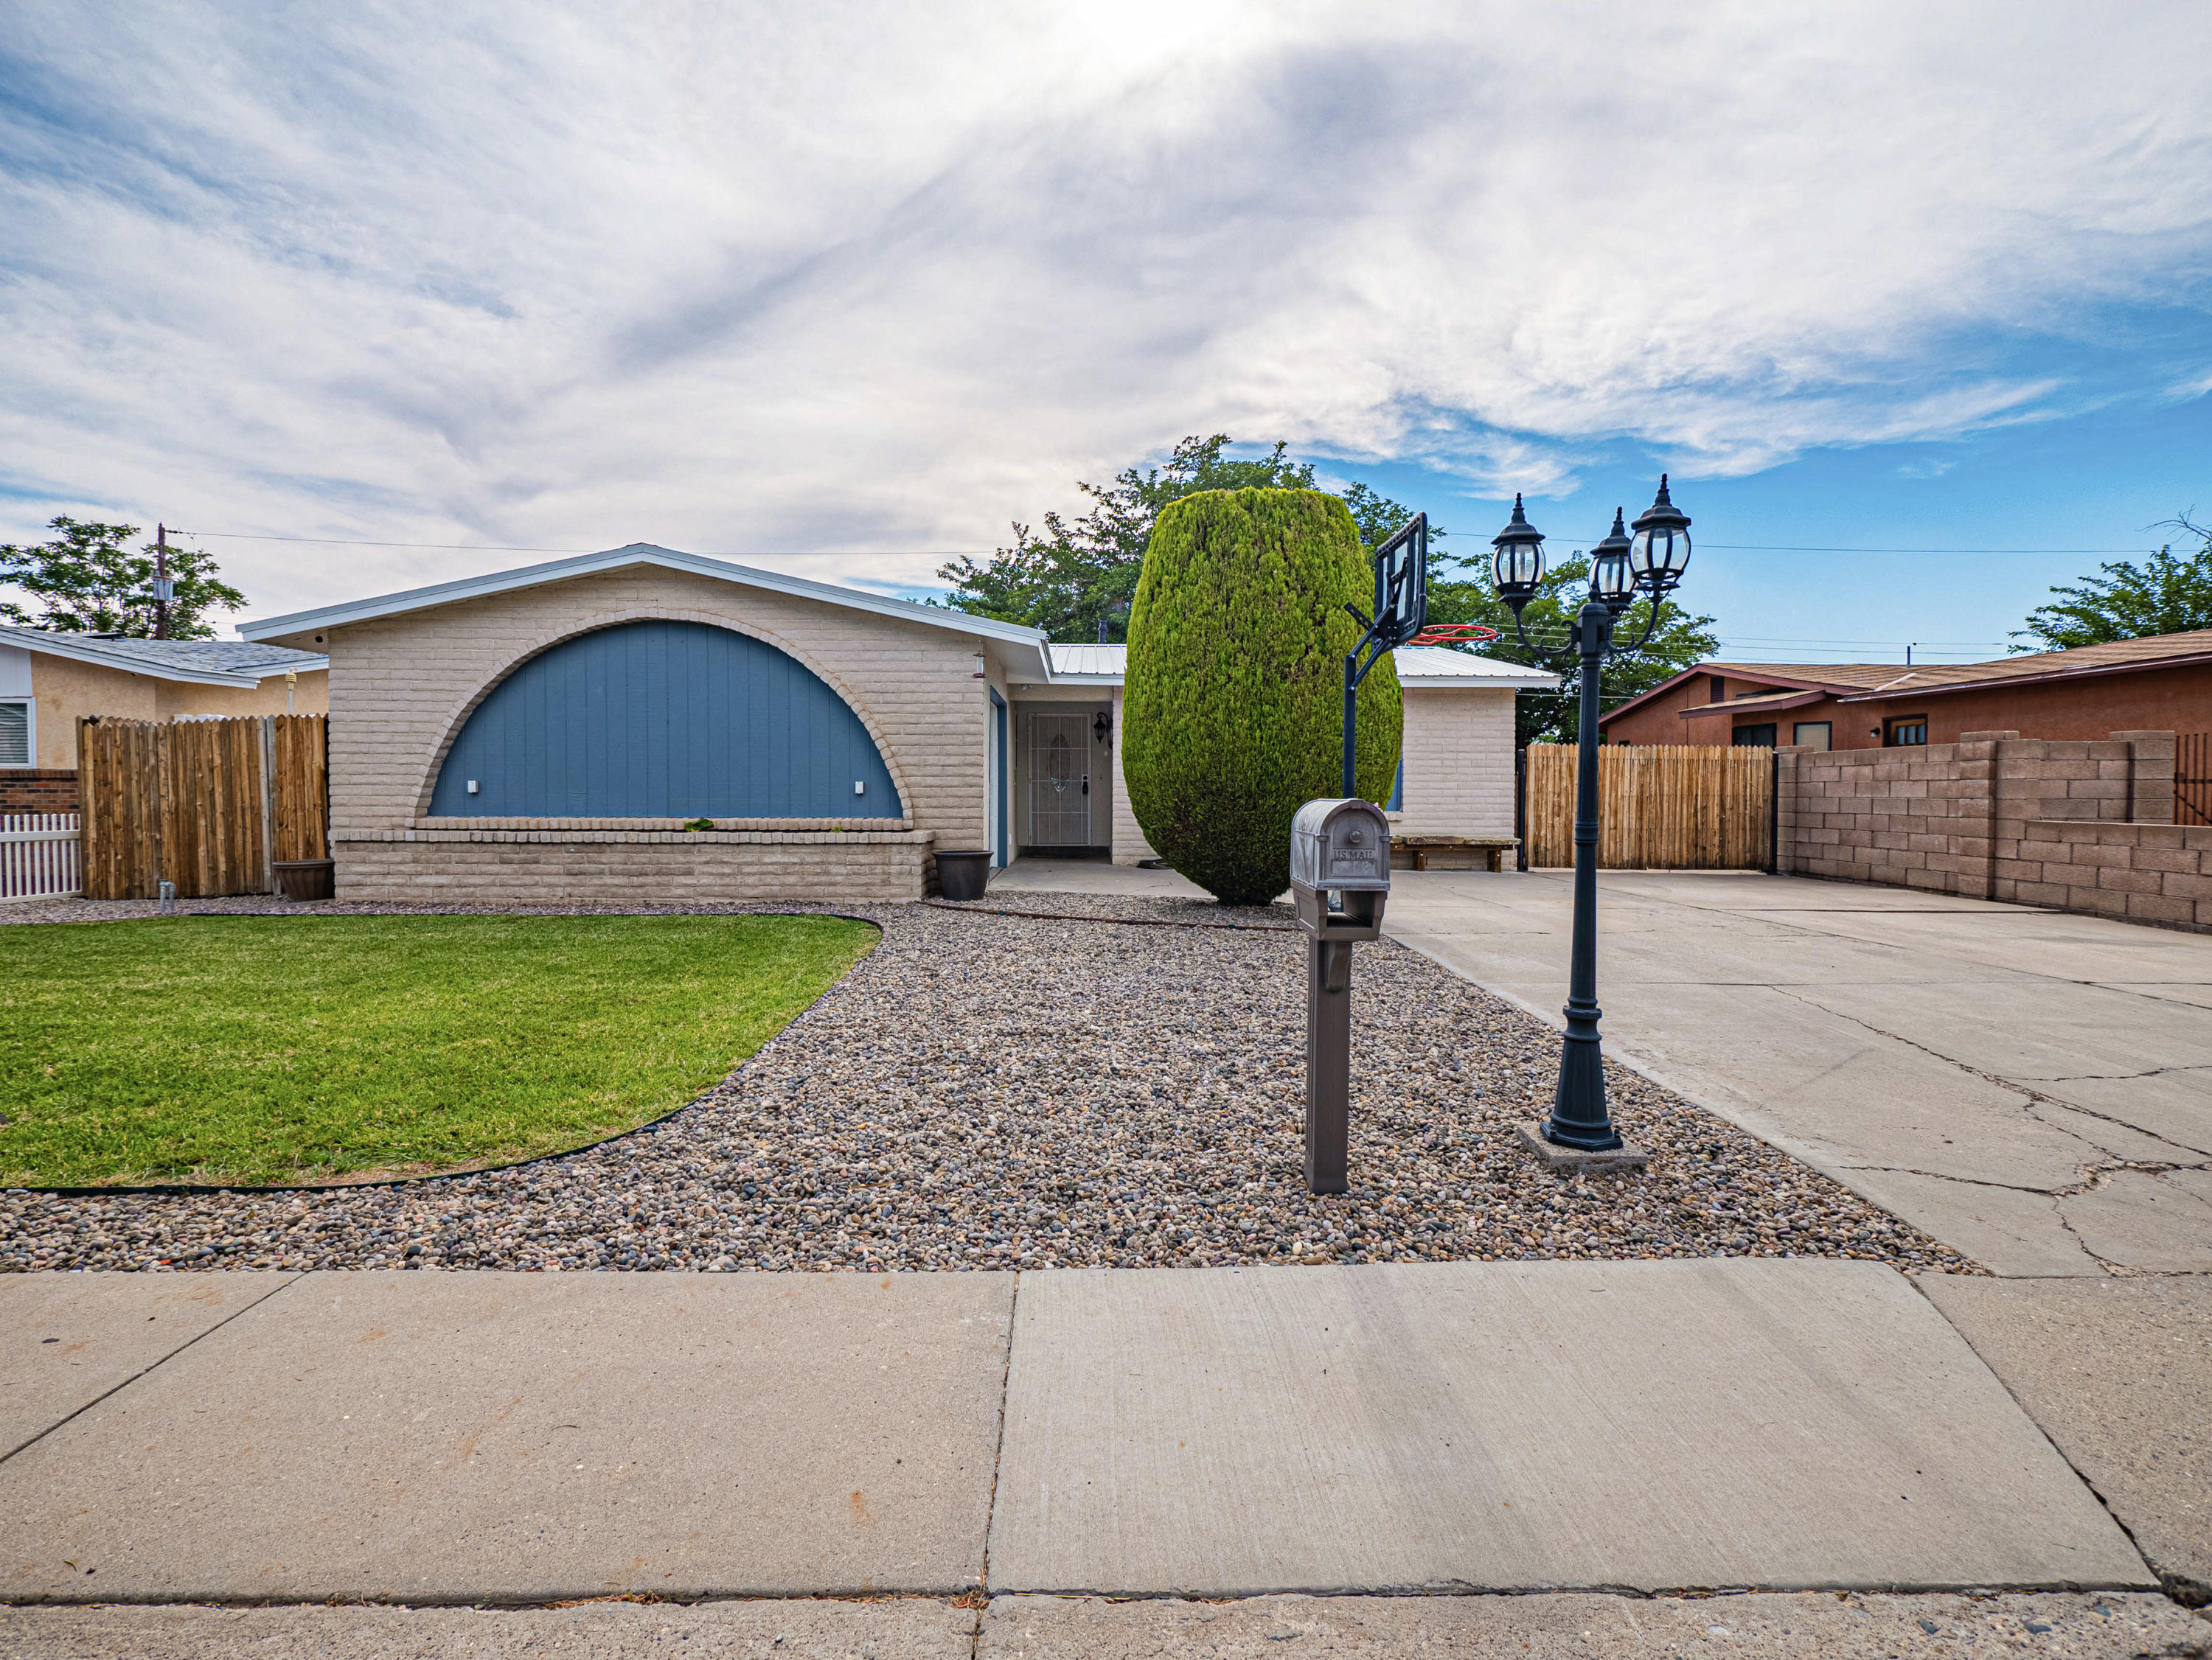 This completely remodeled NE Heights gem is ready for a new owner! New roof, doors inside and out, paint, master bath remodel, windows throughout, garage door,  carpet and stucco improvements all completed 2021! RV parking, hot tub pad with 220V already hooked up. 120 sq ft bonus shed with loft. Refrigerated air. Plumbed and ready for your favorite pellet stove. Tankless water heater. So many upgrades. Come check it out today!